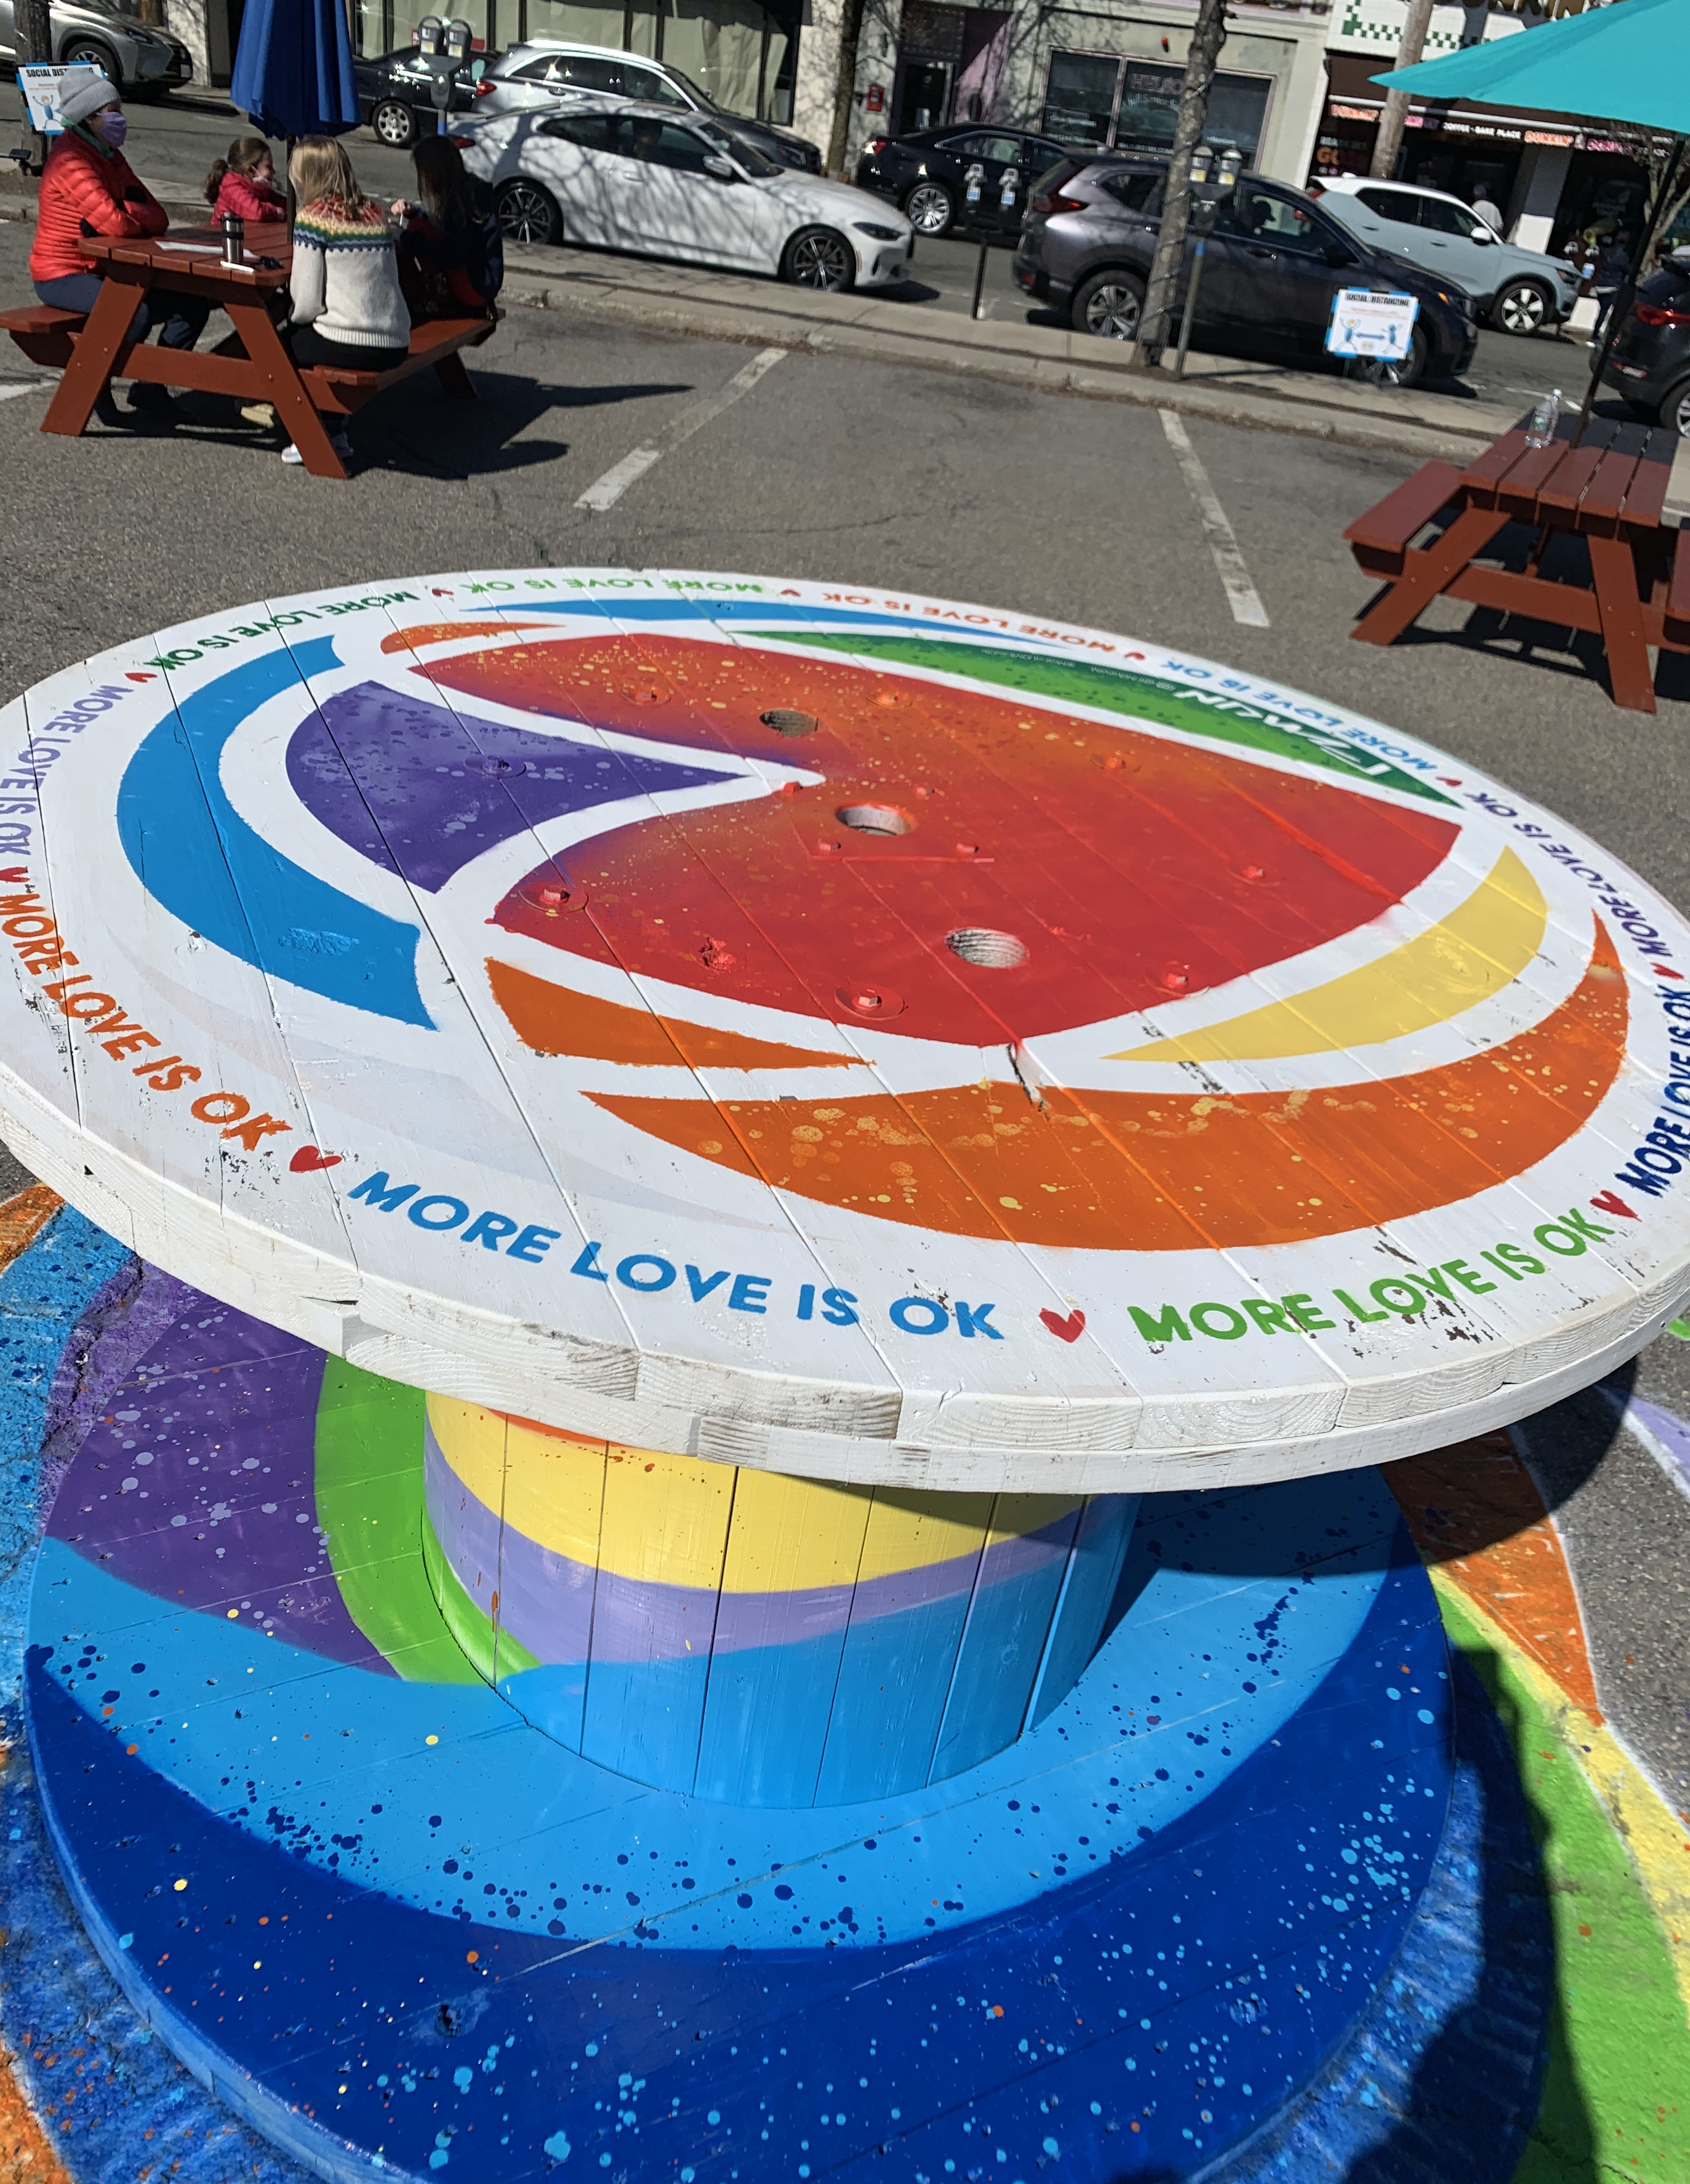 Colorful table with heart in center